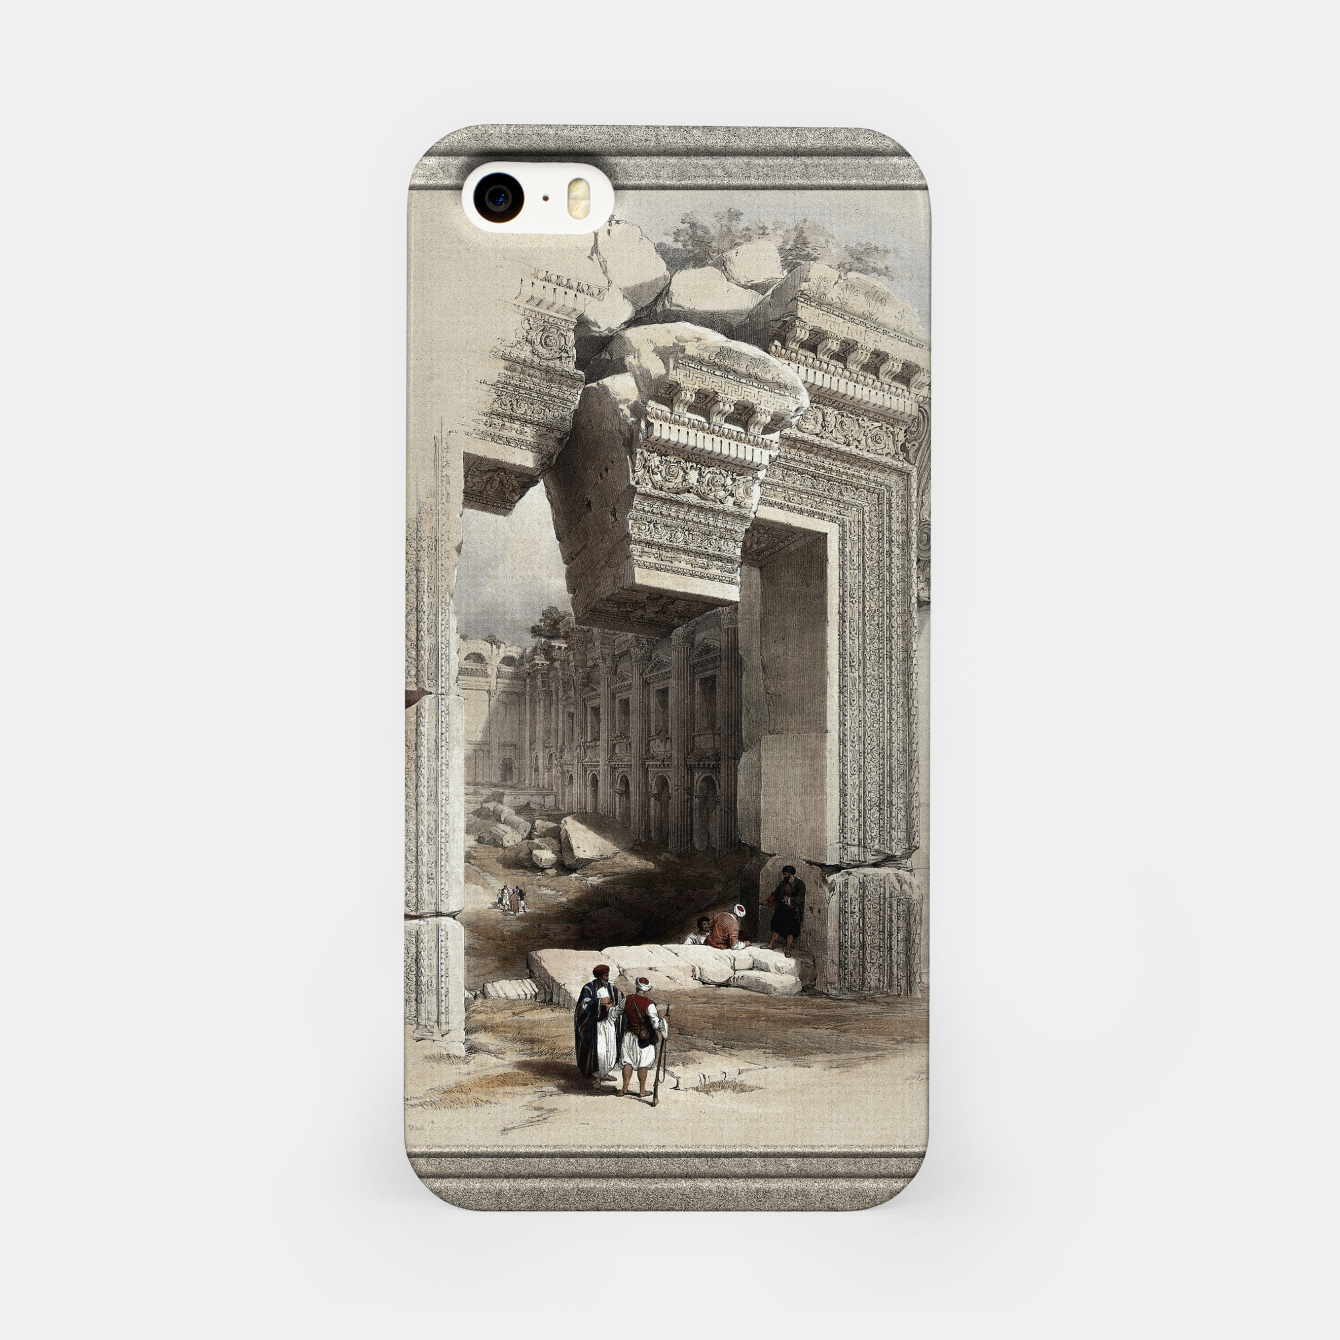 Zdjęcie Carved Stone Doorway at Baalbec, Colored Lithograph by Louis Haghe iPhone Case - Live Heroes